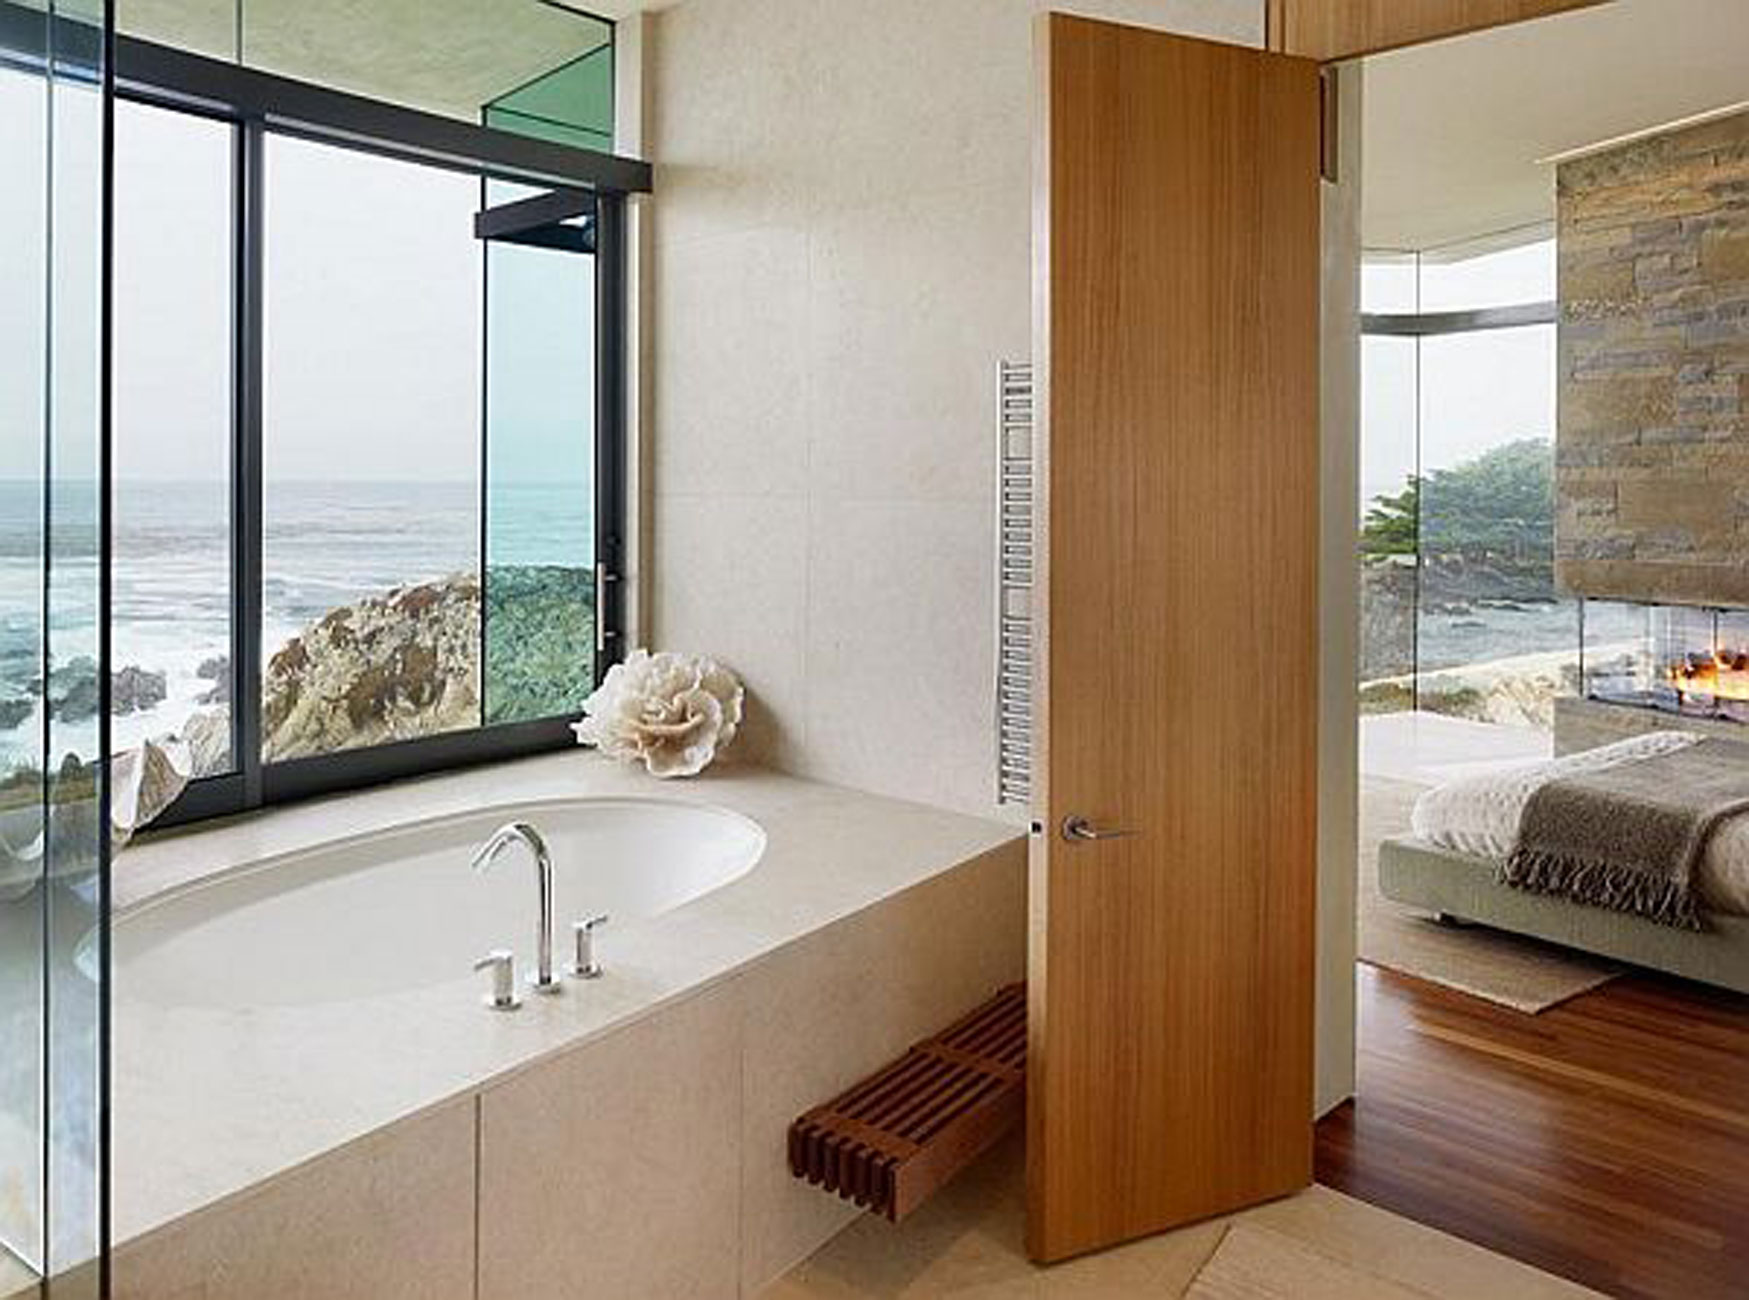 Luxurious Mountain House Design, Otter Cove Residence by Sagan Piechota - Bathroom